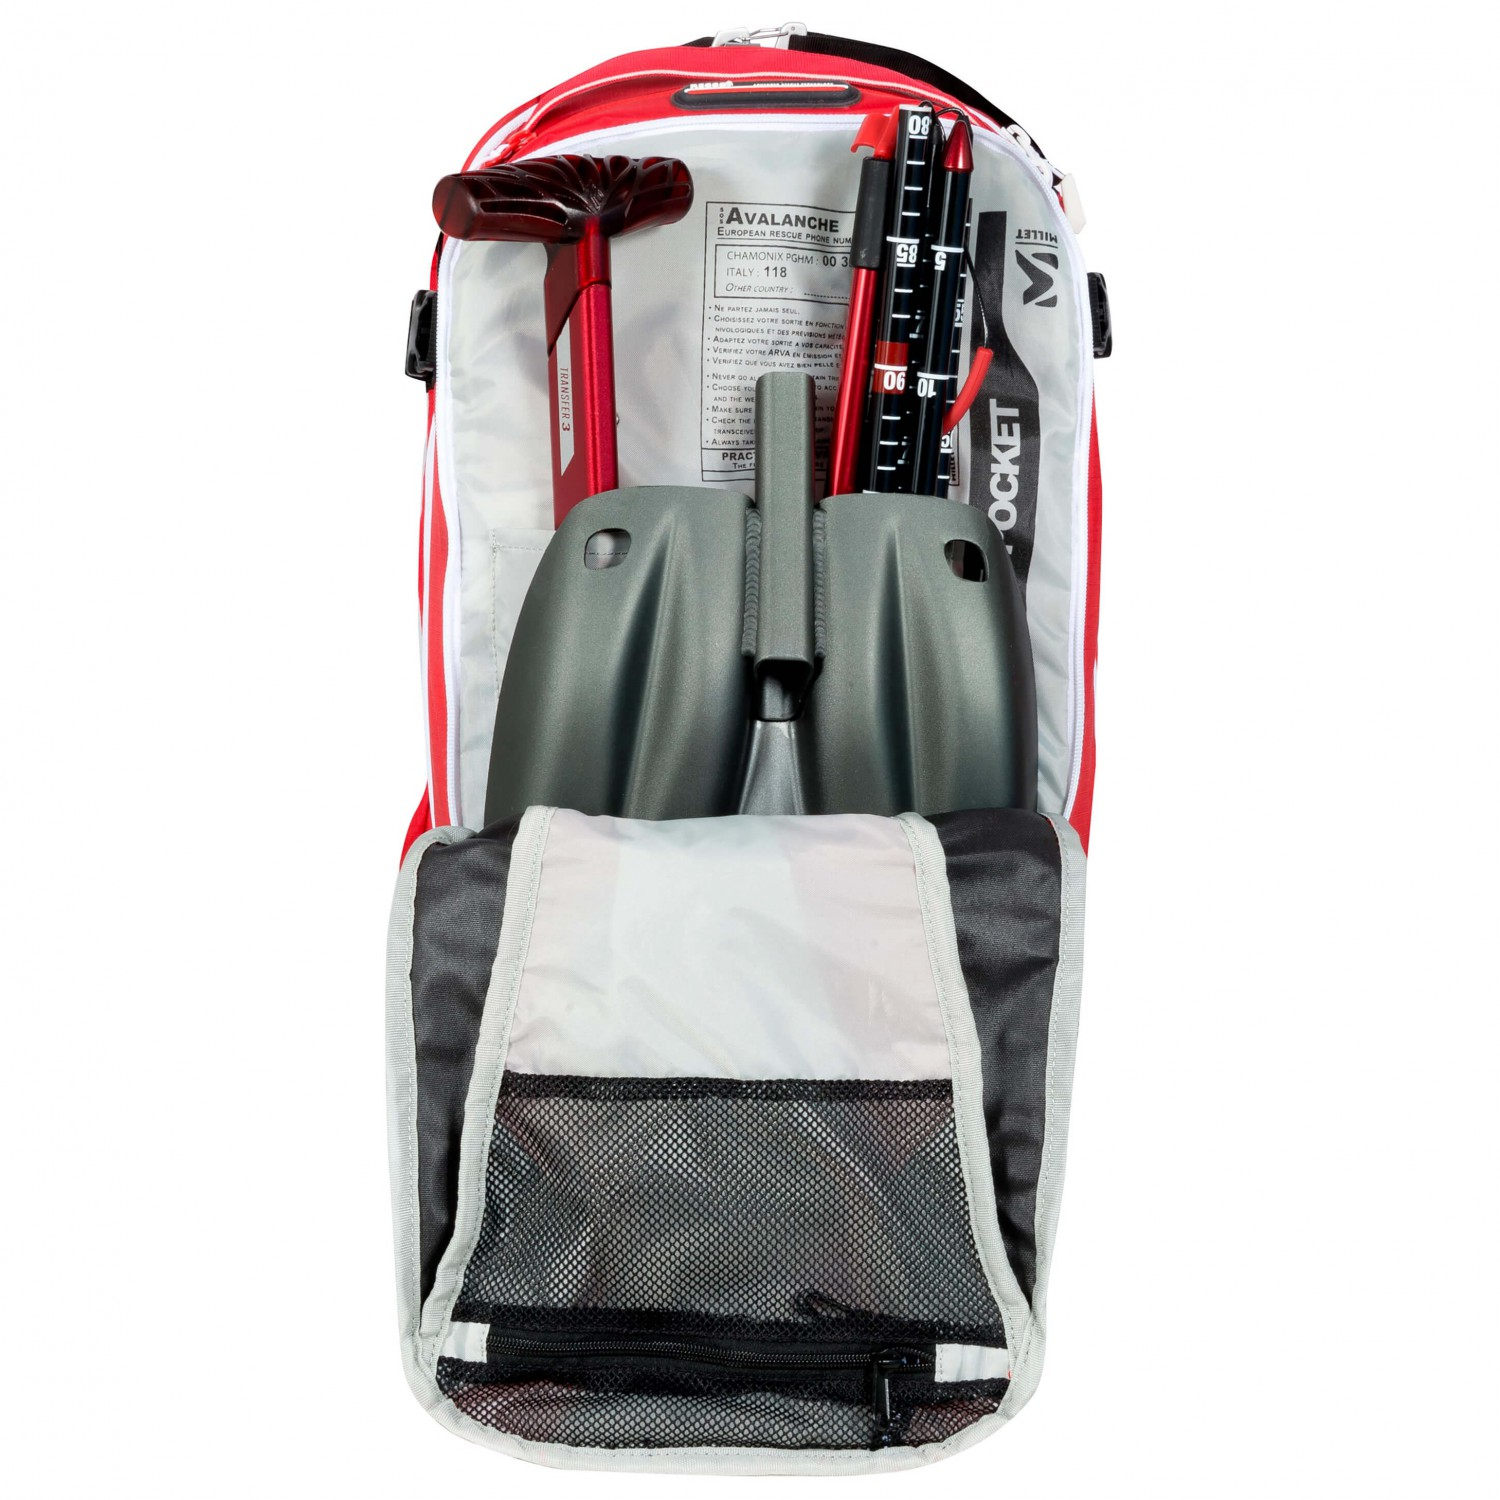 Ski Touring Backpack Size